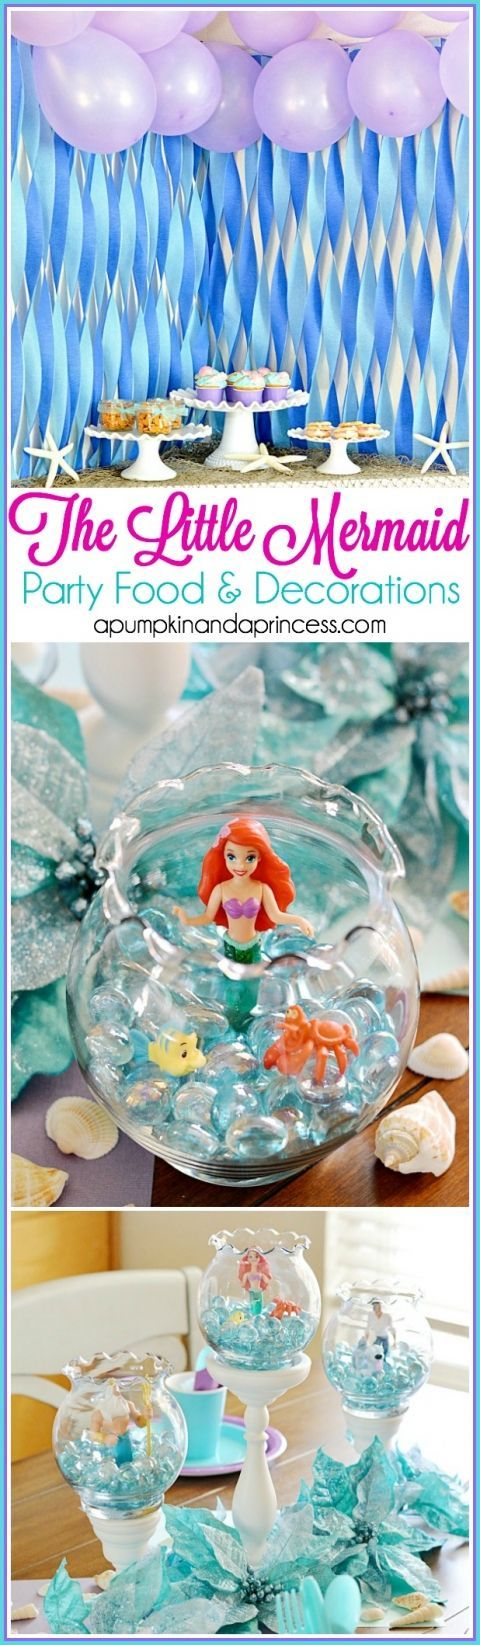 Decoration Stuff For Party 17 Best Ideas About Little Mermaid Decorations On Pinterest